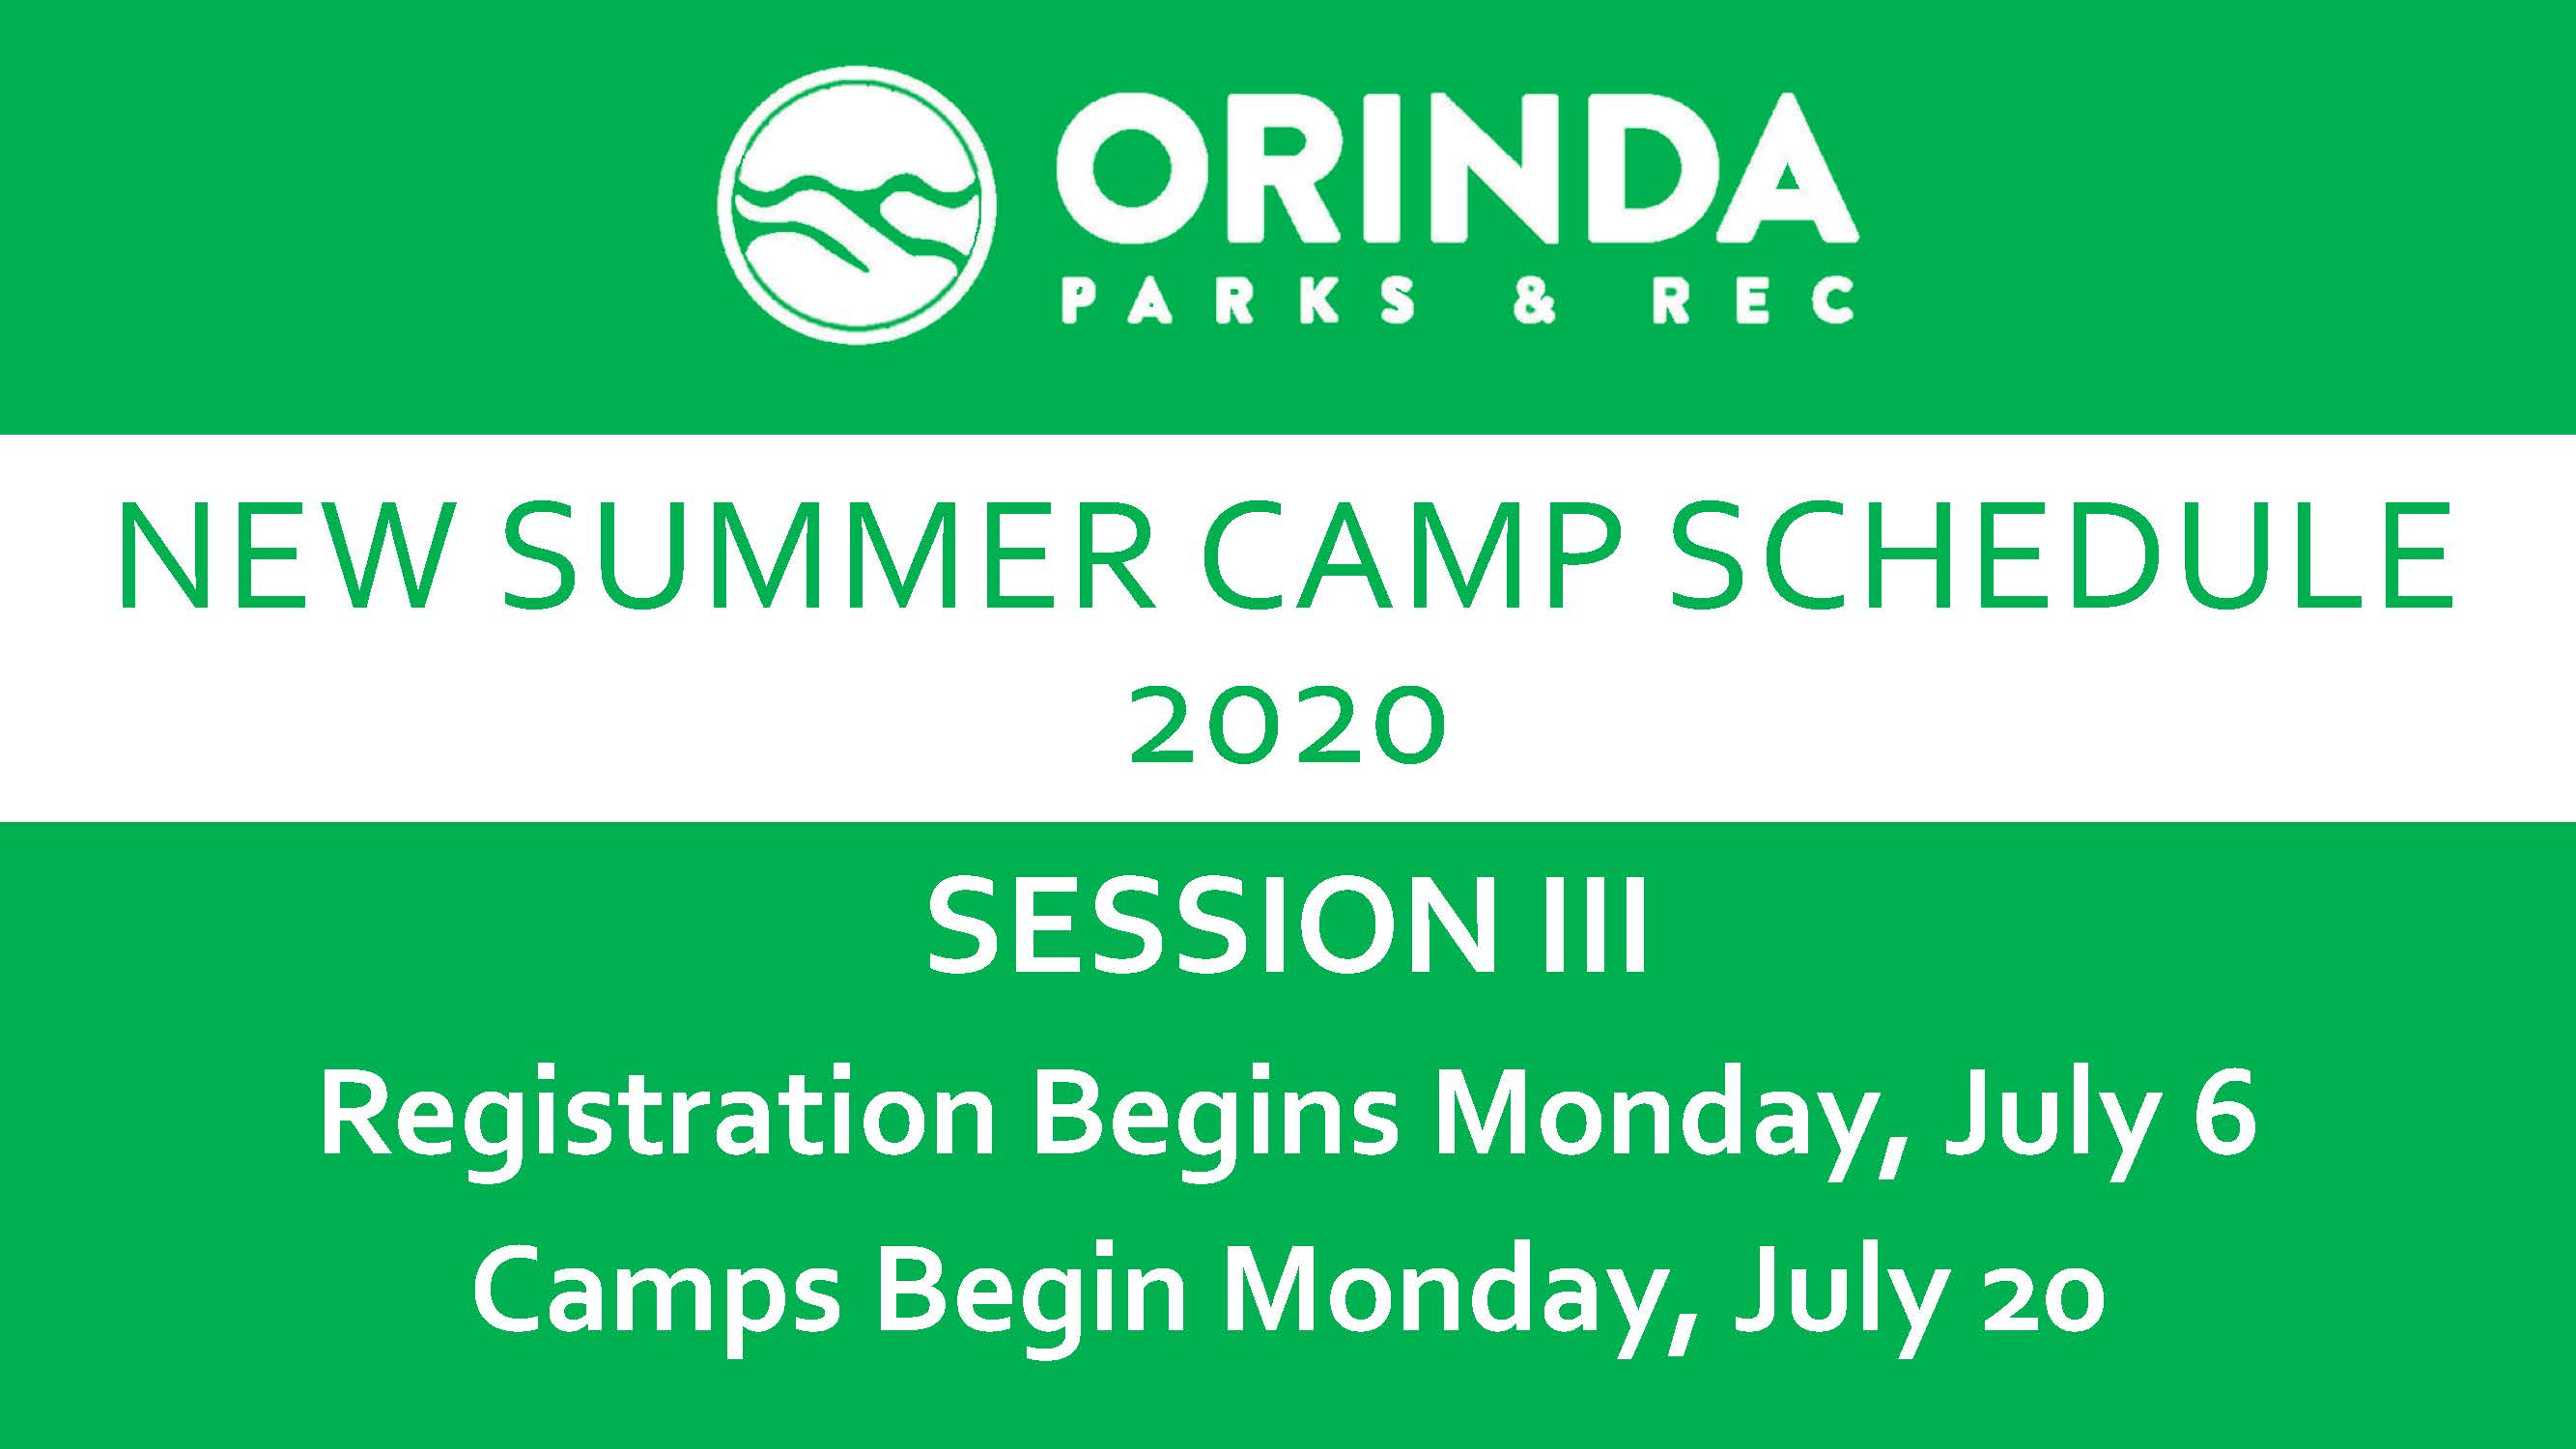 Summer Camp Schedule Session III Image